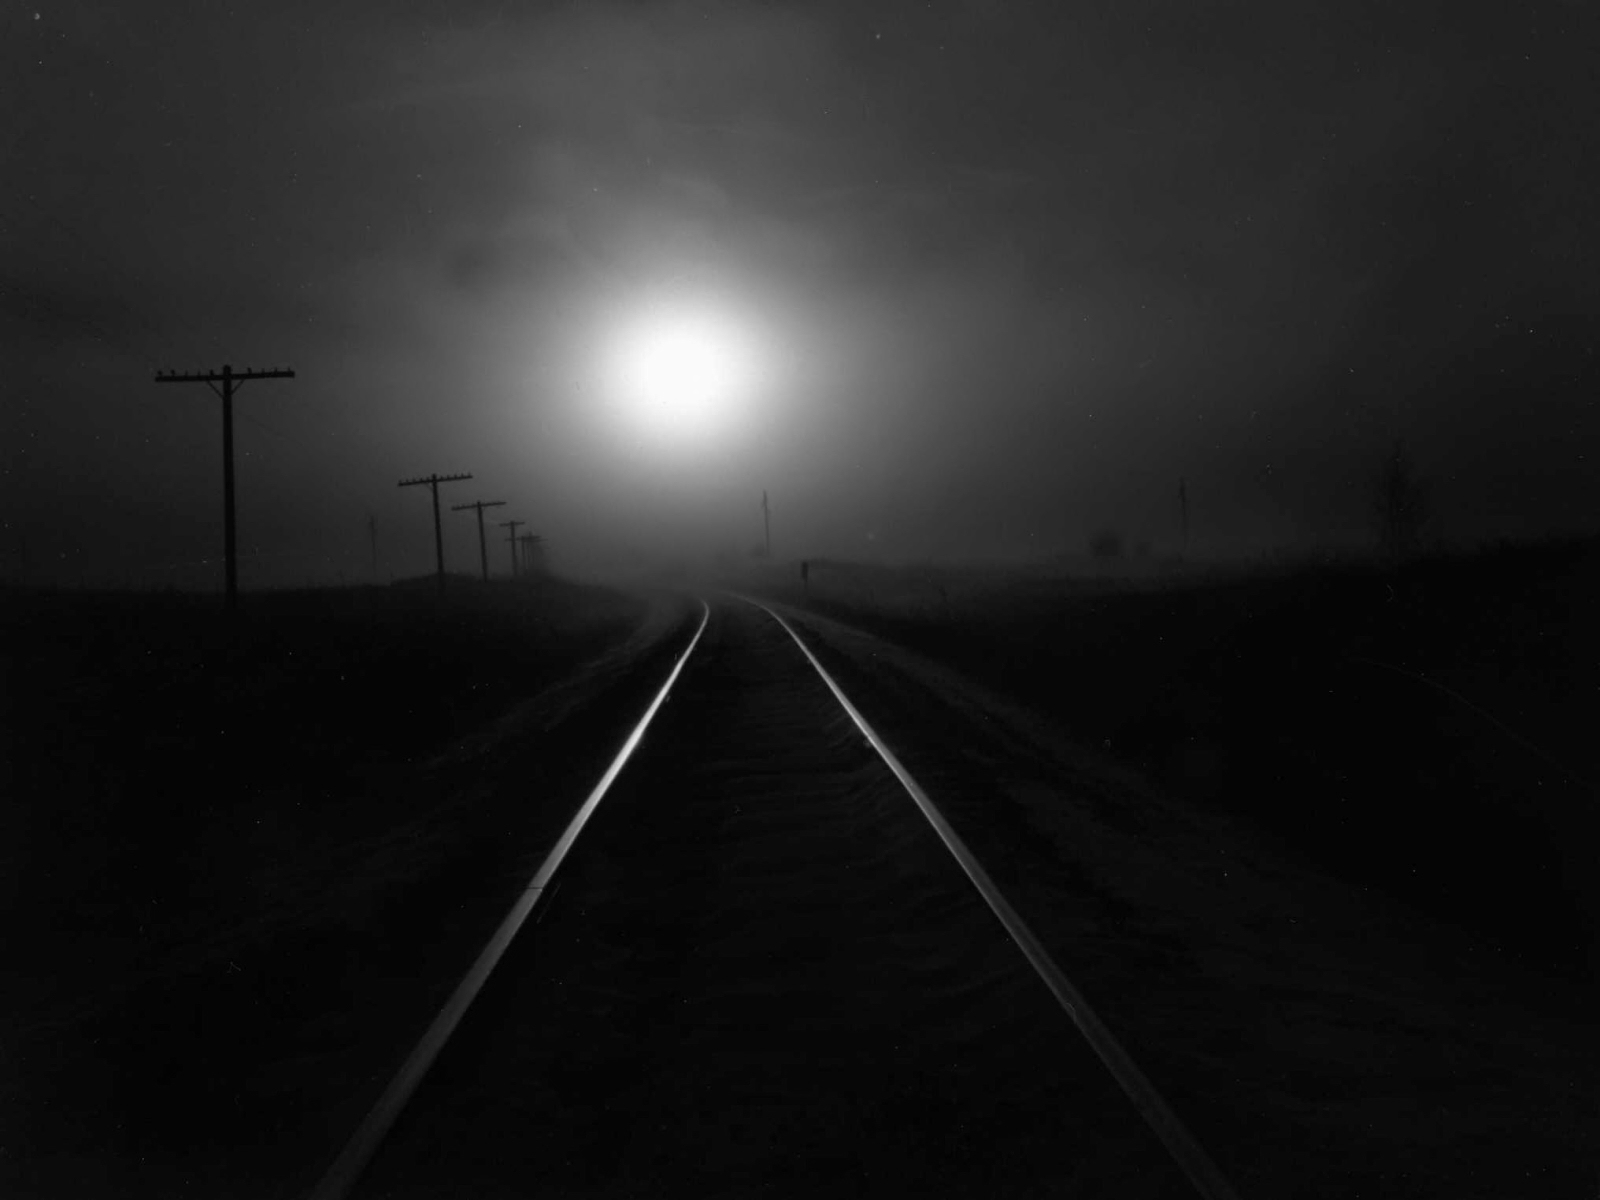 black and white photo of a railroad